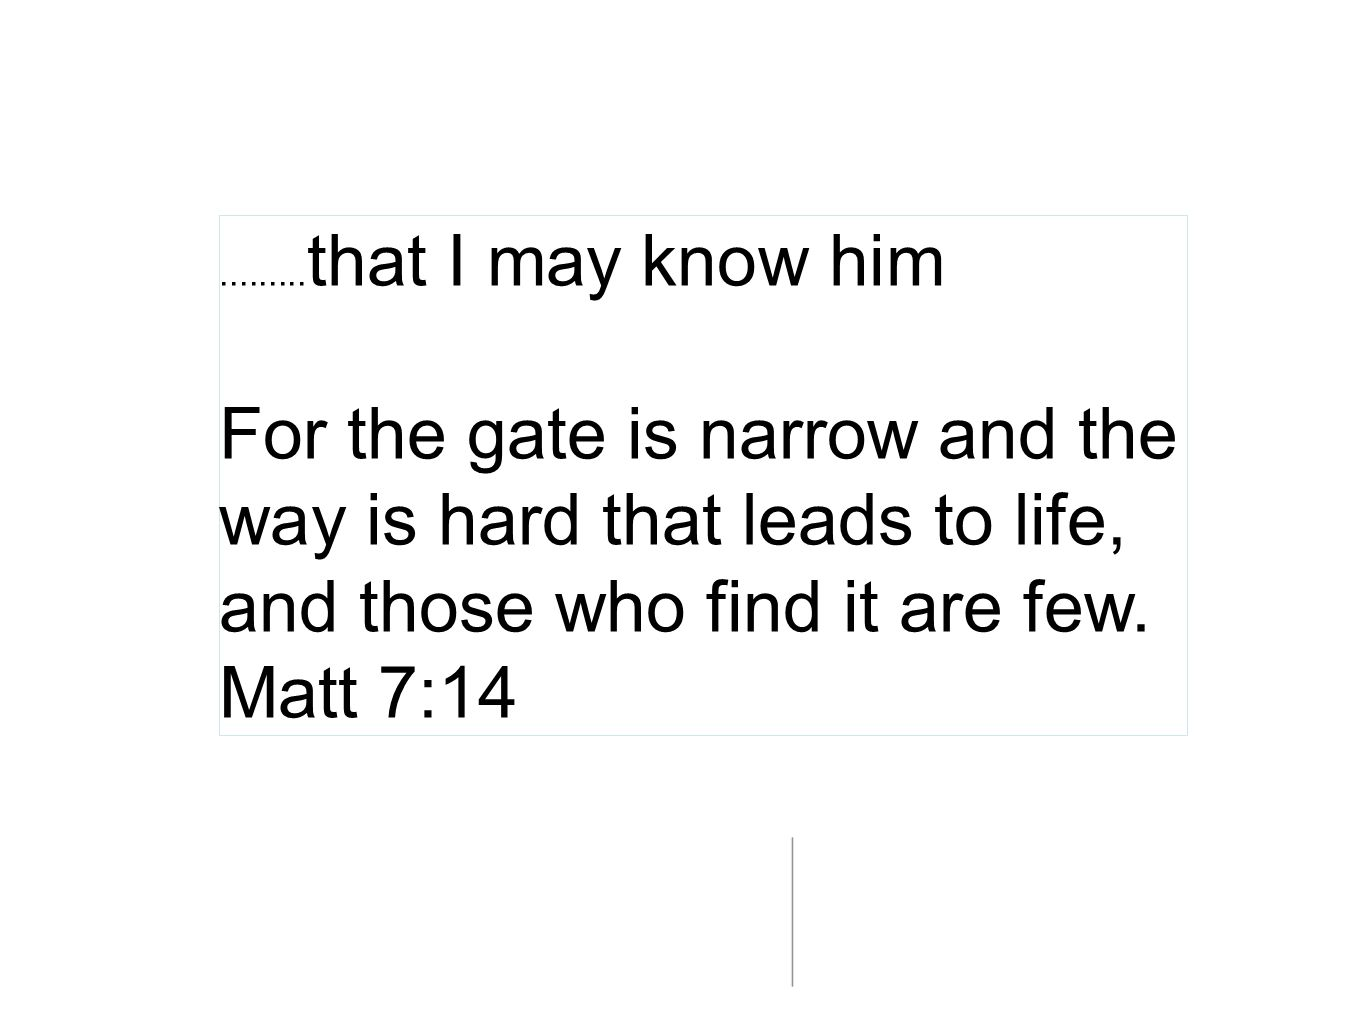 .........that I may know him For the gate is narrow and the way is hard that leads to life, and those who find it are few.